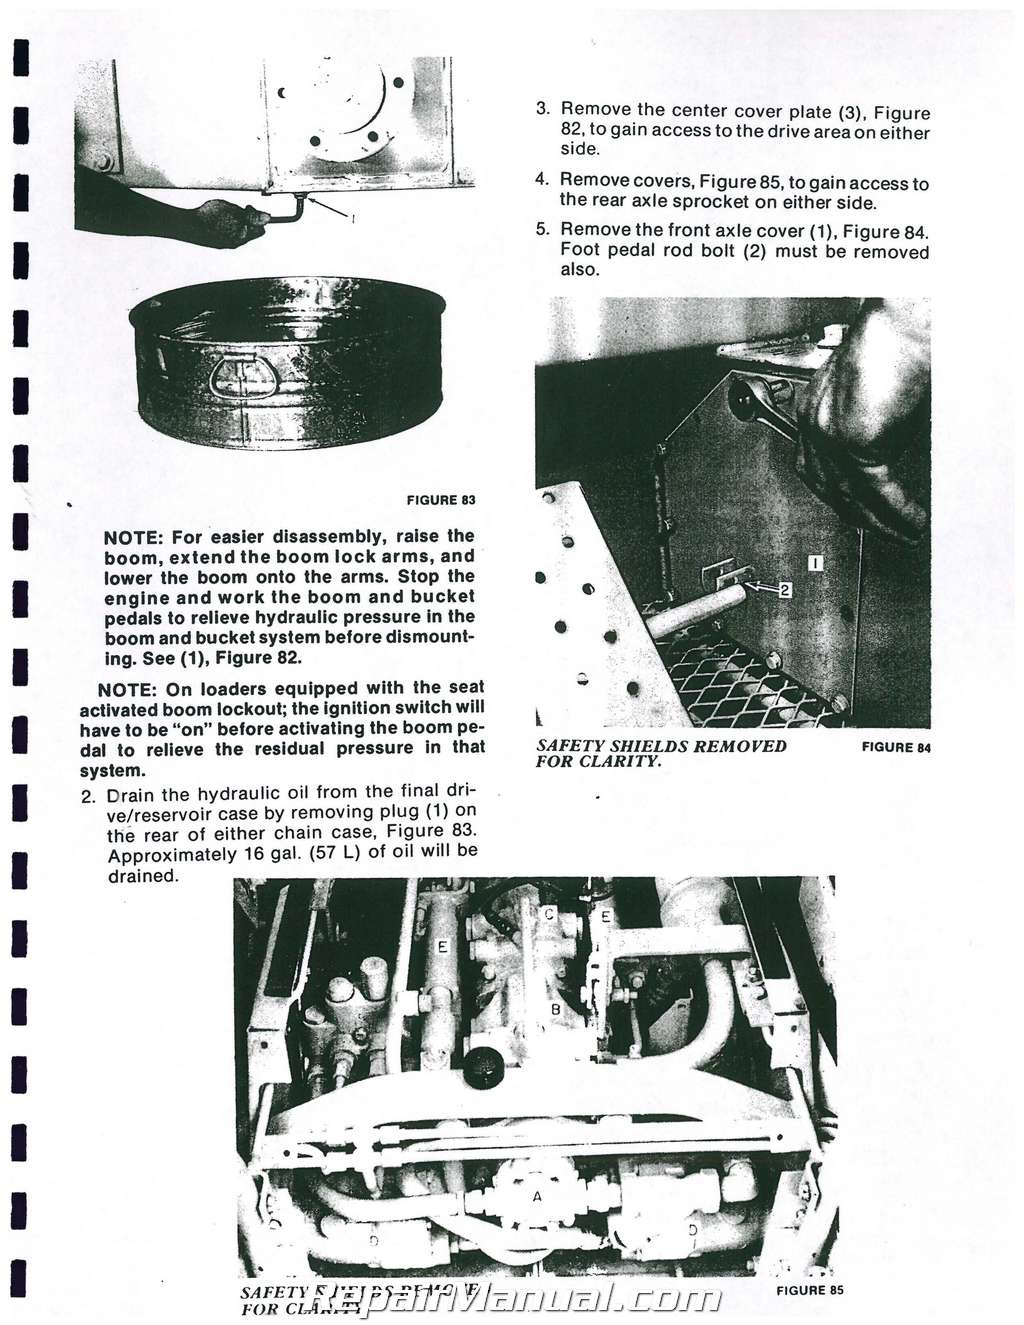 Ford New Holland L225 Skid Steer Service Manual New Holland Skid Steer Wiring Diagram L on